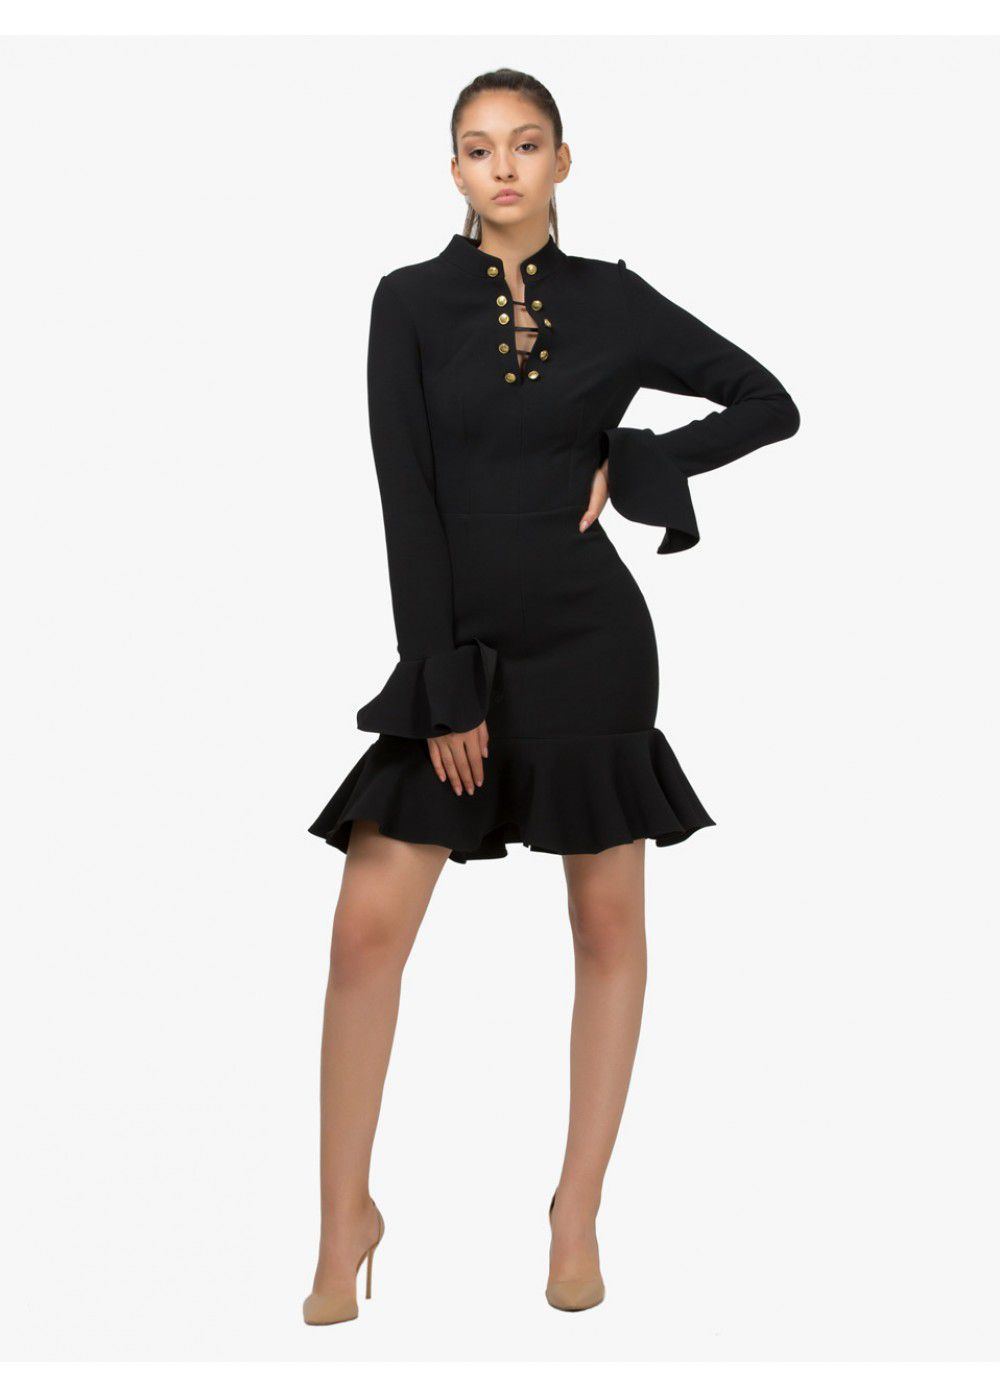 Maleone Black Wavy Dress on Buttons